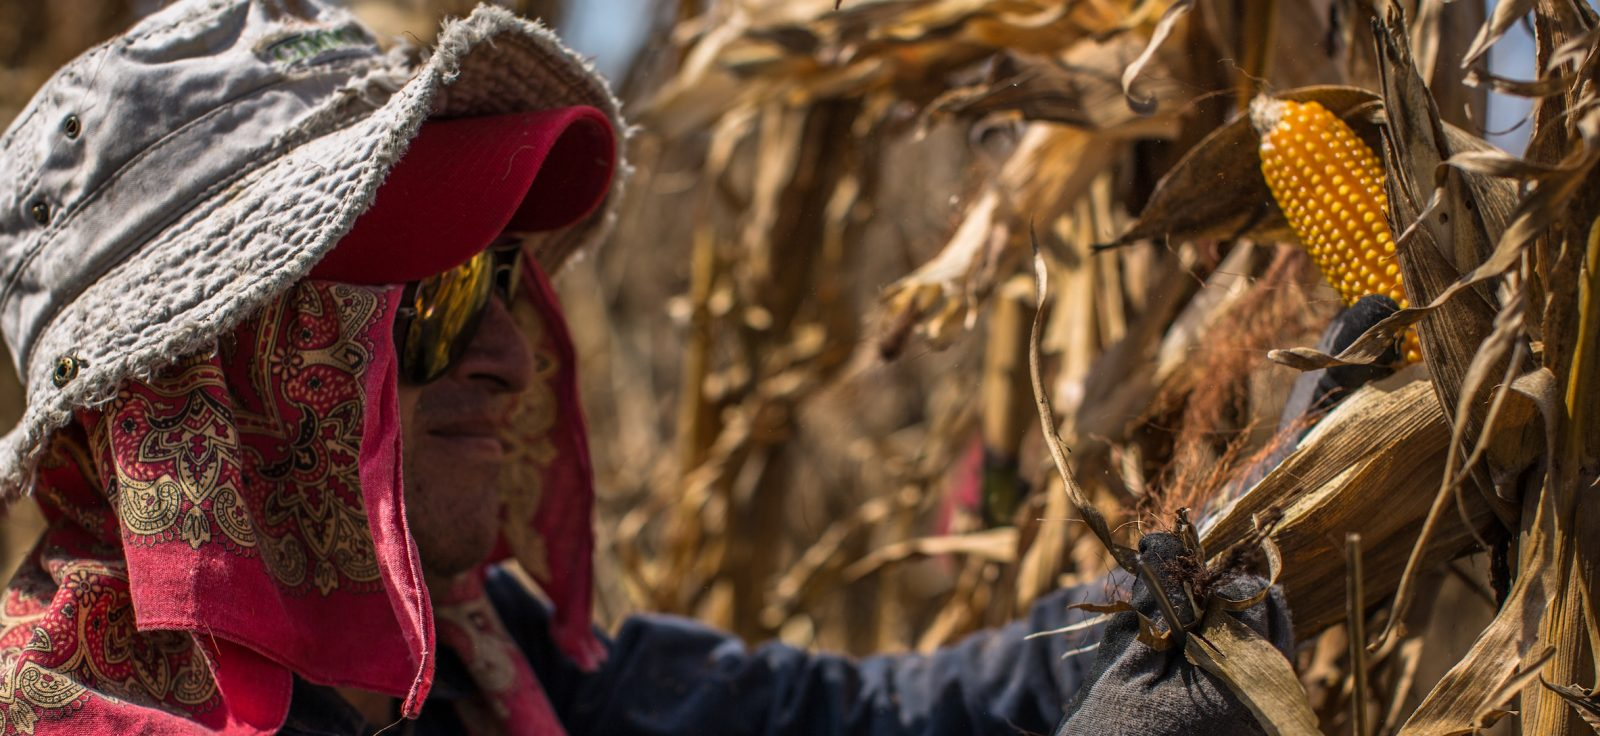 A CIMMYT worker husks an ear of maize to check the grain's ripeness in an evaluation field in Texcoco.